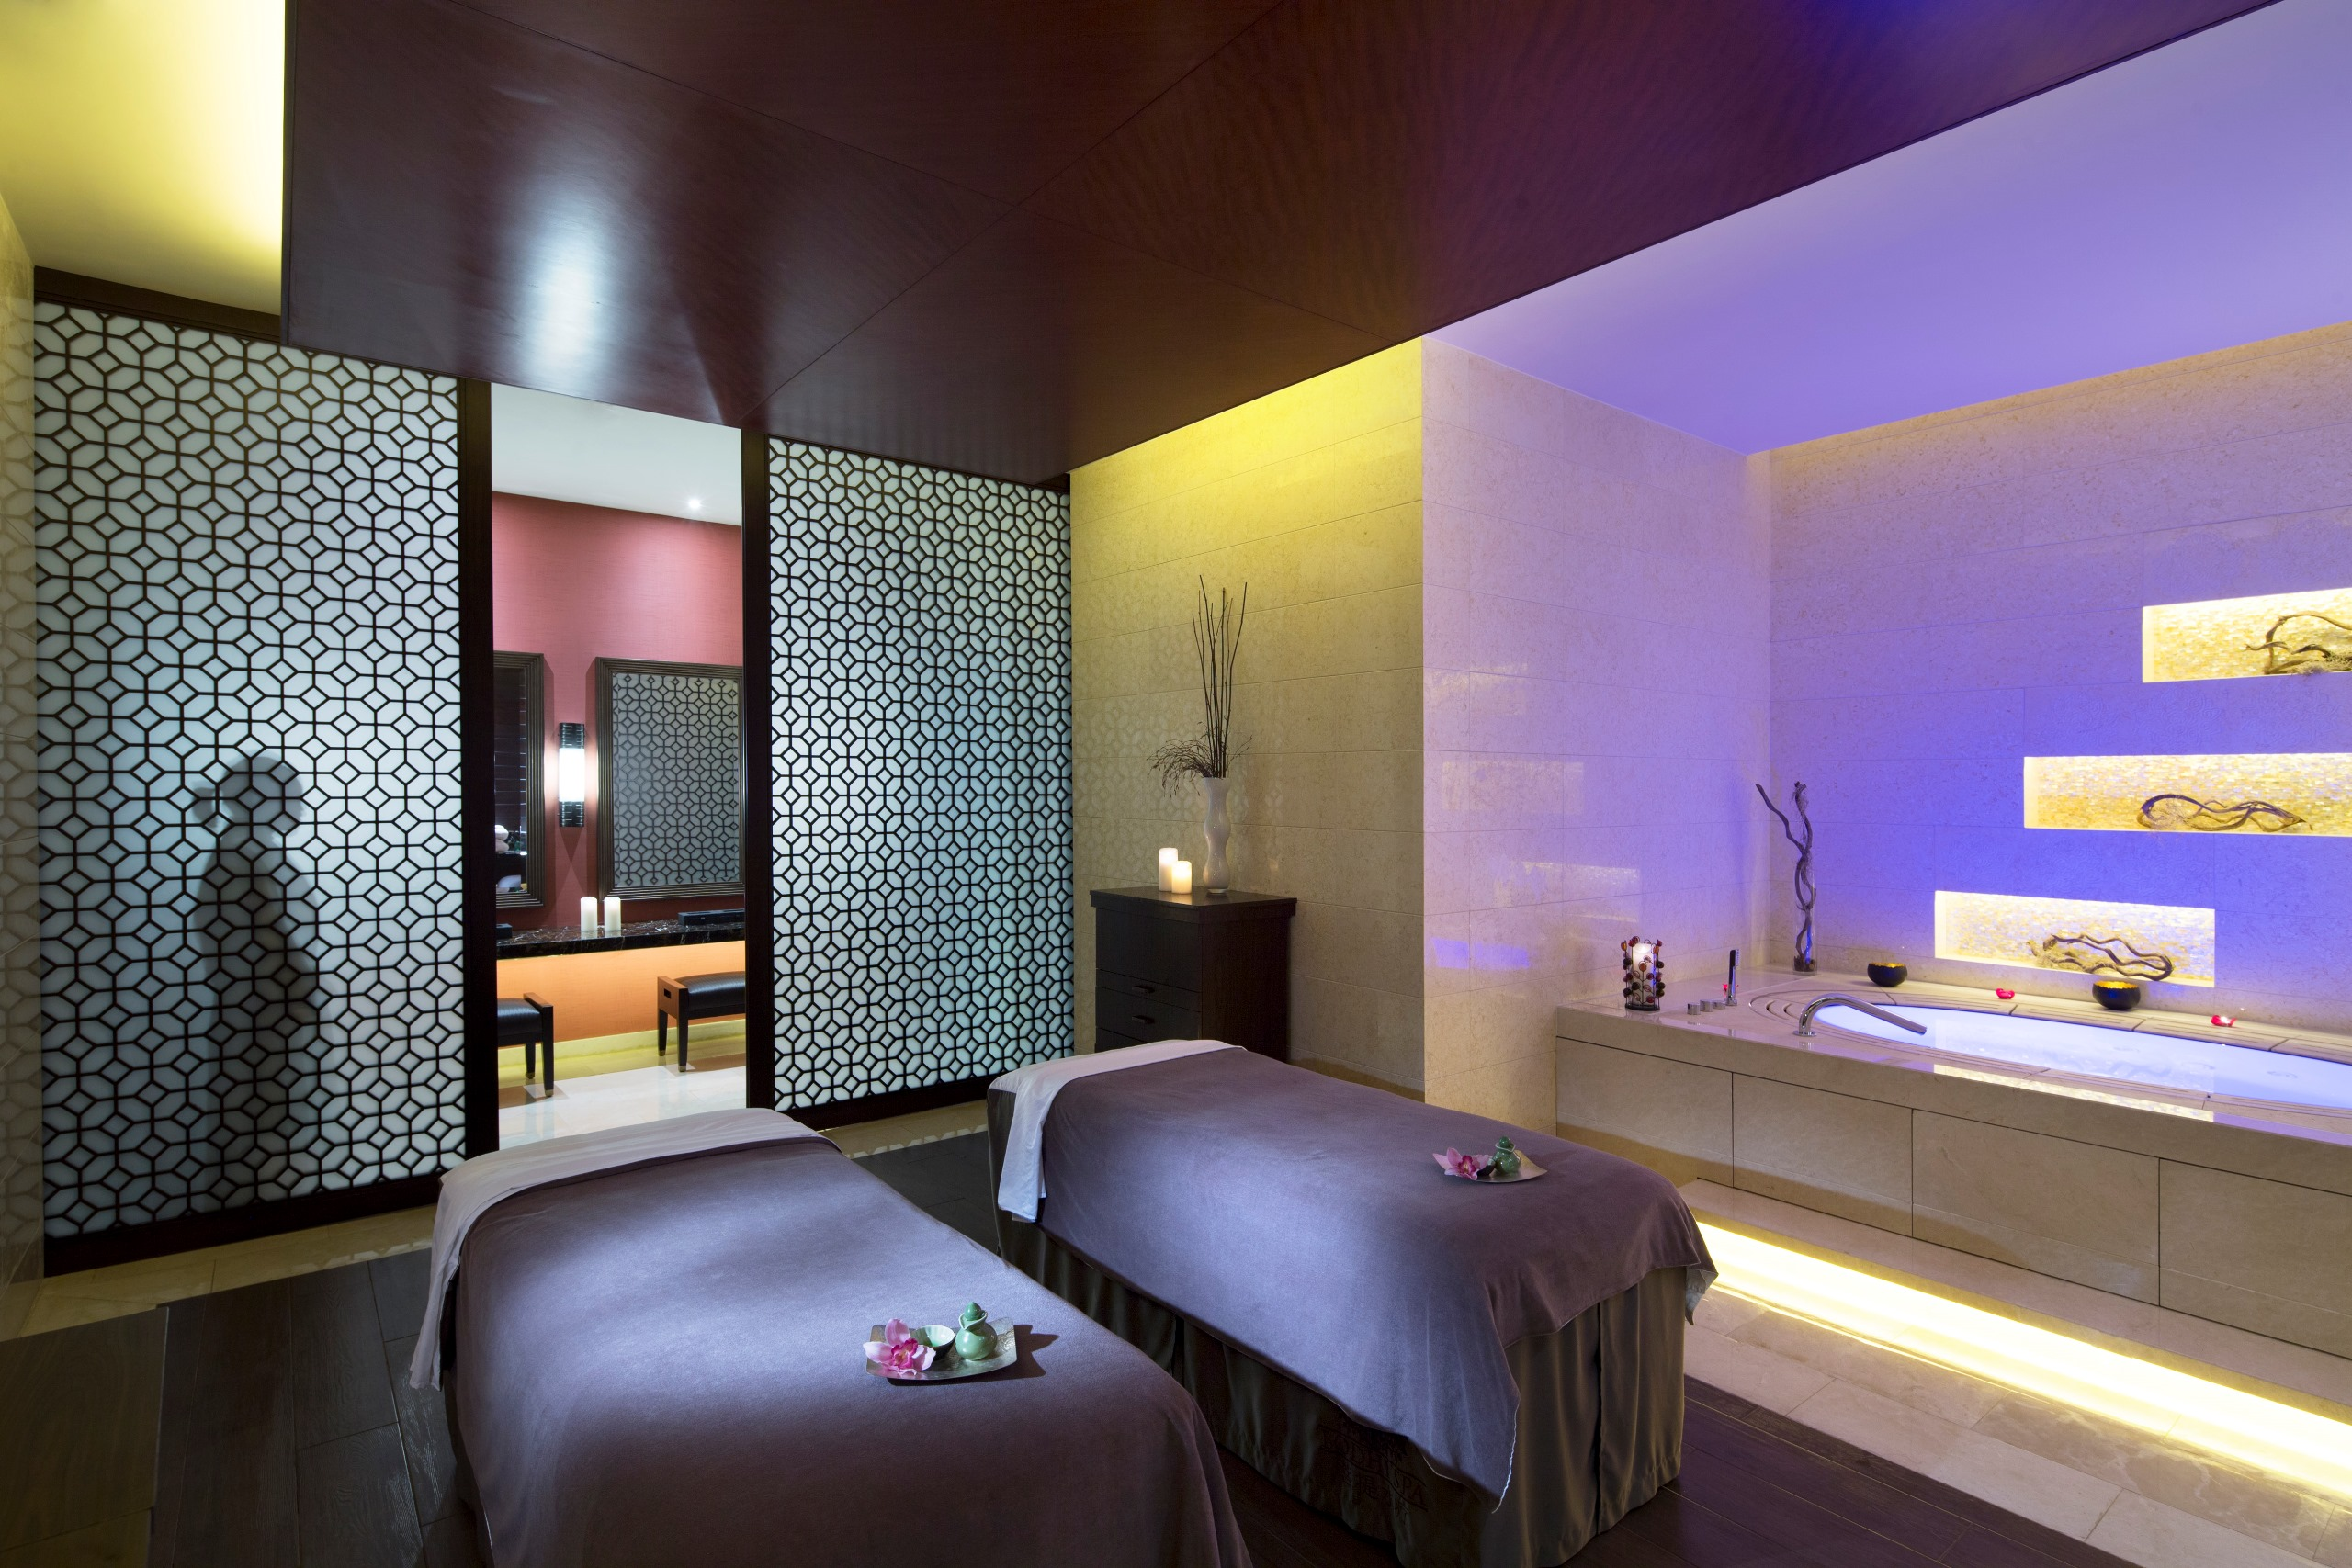 bodhi spa treatment room